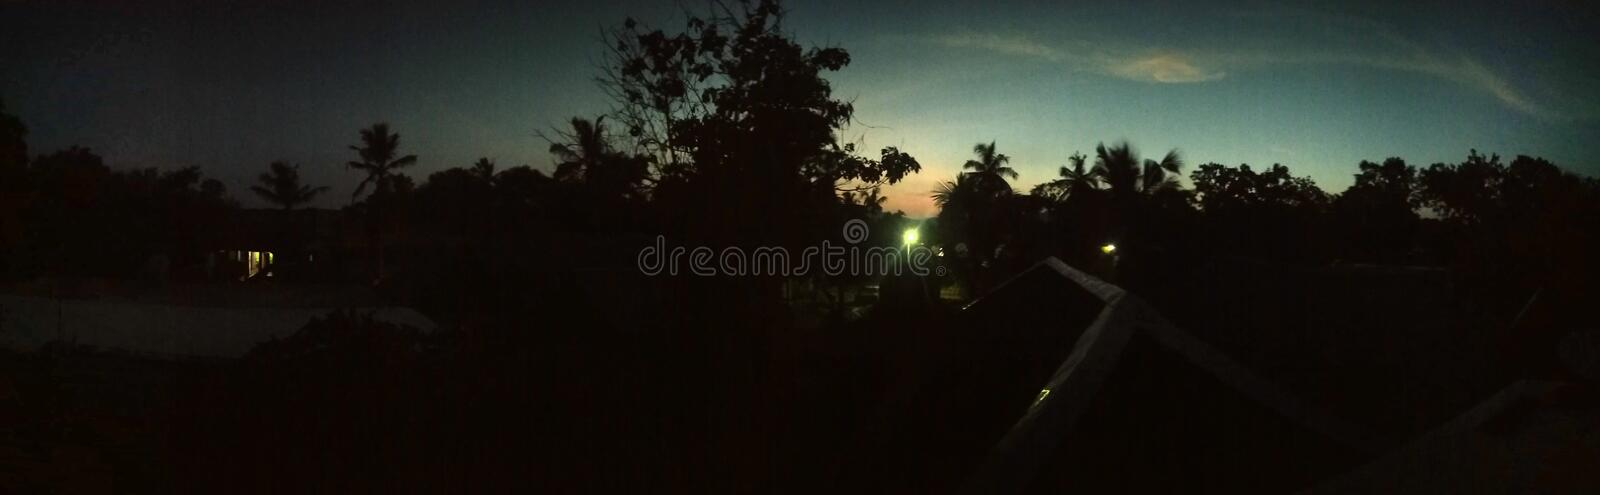 Night shot in village india looks perfect. Night shot in village india looks royalty free stock photography